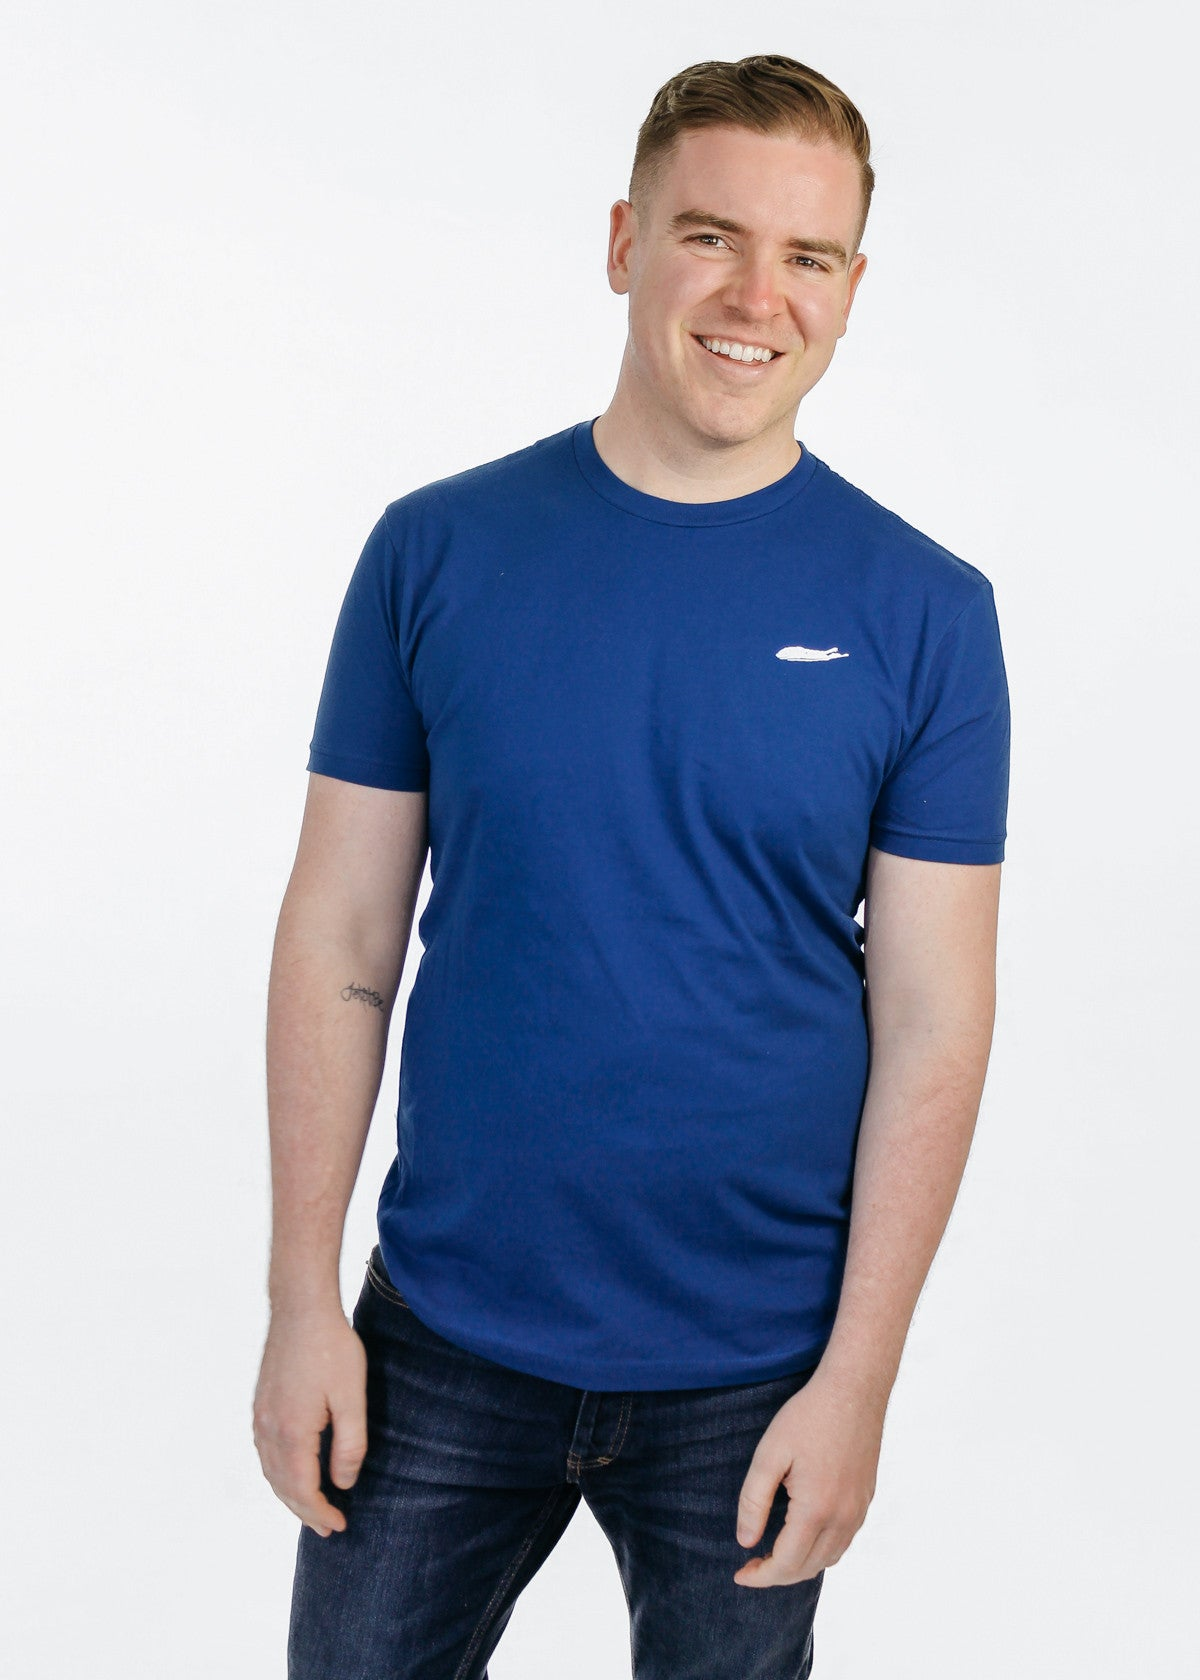 Men's T-Shirt: 100% Cotton Crew Neck Short Sleeve - Royal Blue - Love The Island